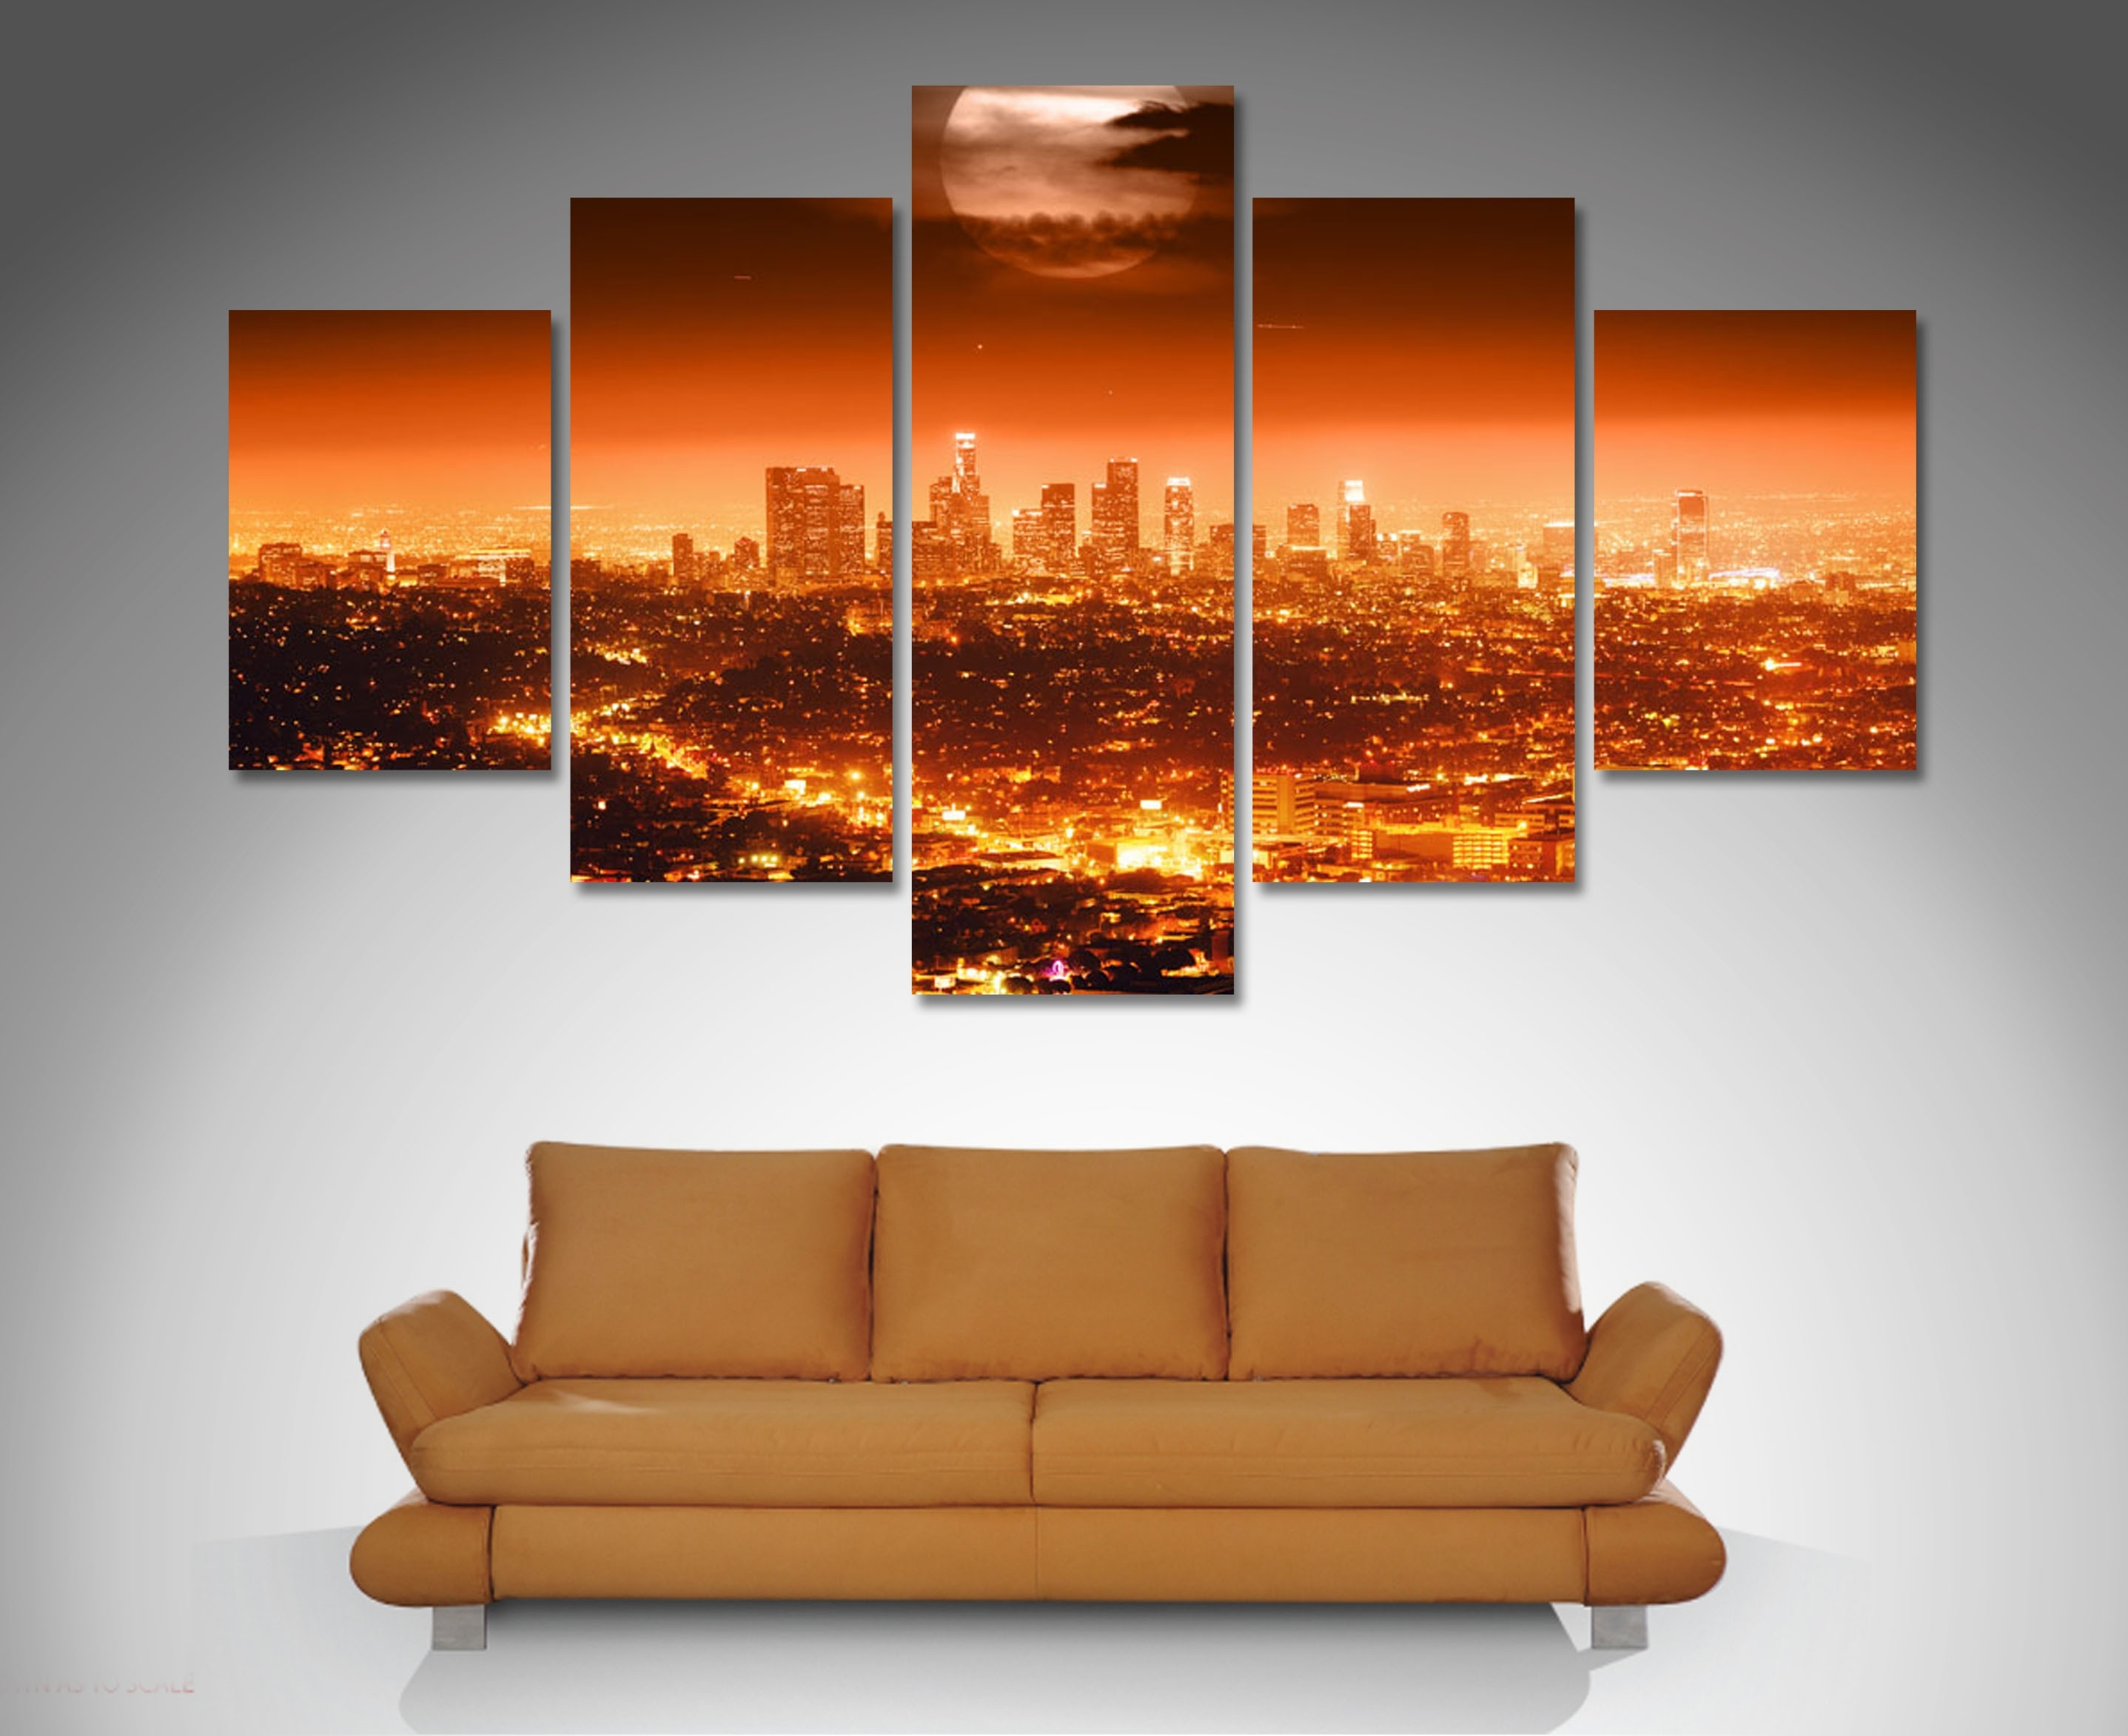 Los Angeles 5 Panel Diamond Shape Canvas Prints Http://www With Regard To Most Up To Date Wall Art Fabric Prints (View 12 of 15)